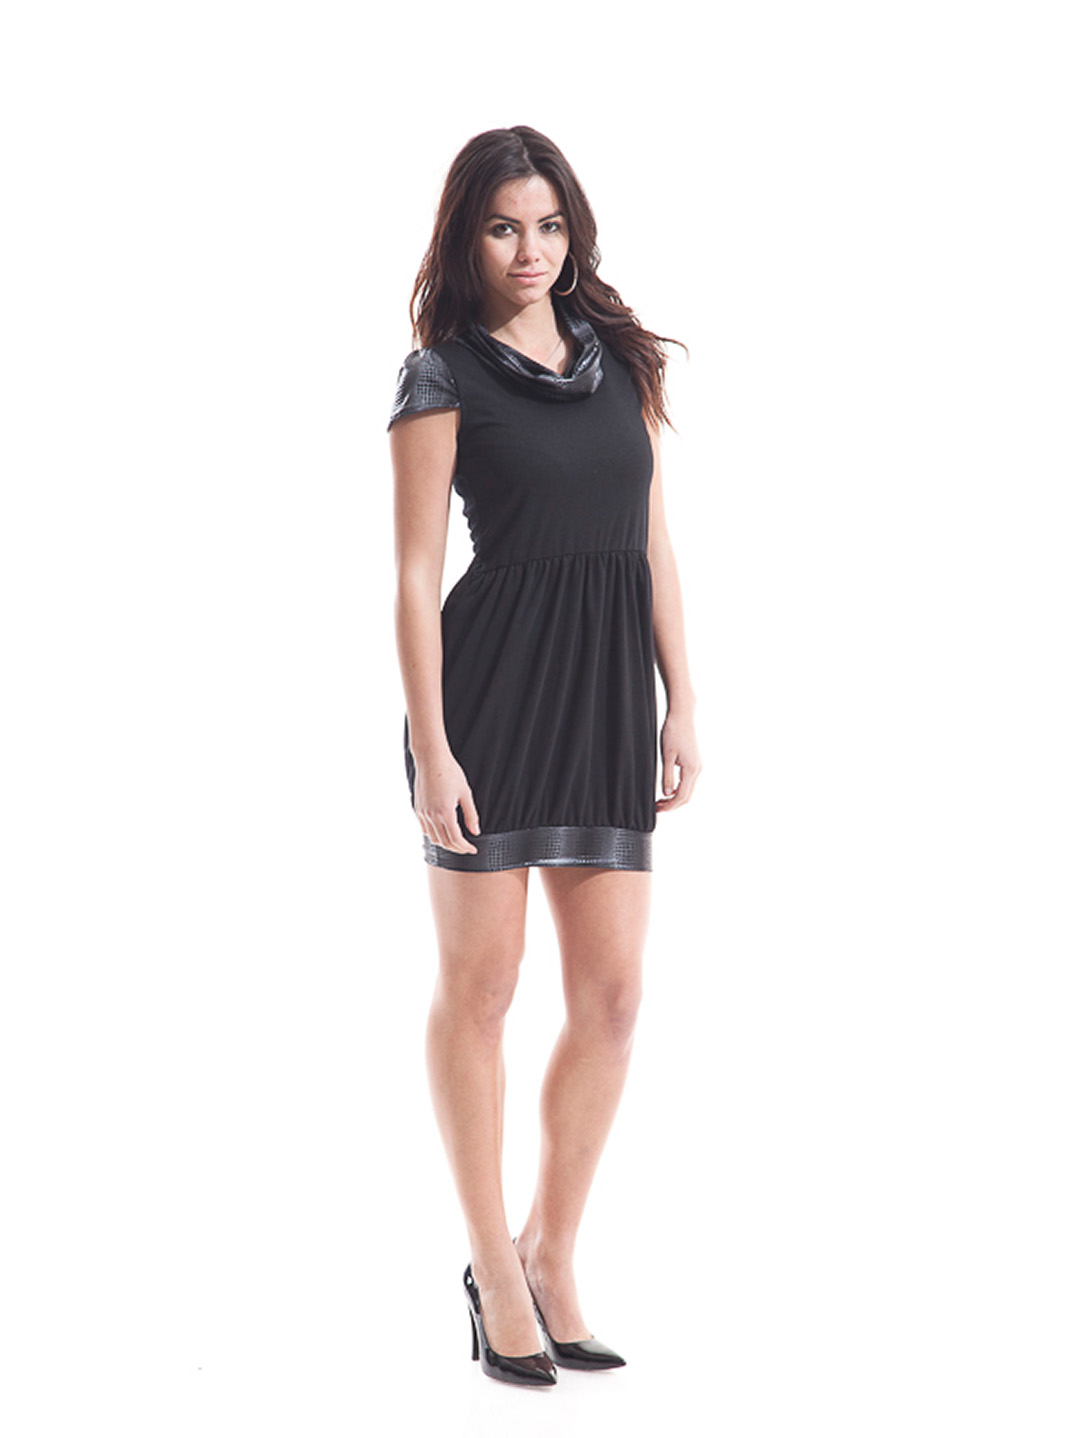 A sophisticated high bun that leaves the side bangs unattended looks great with this apparel that has a sexy embellishment over the soft comforting fabric of this Sexy Tight Short Dresses along with your sexy metallic high heels.